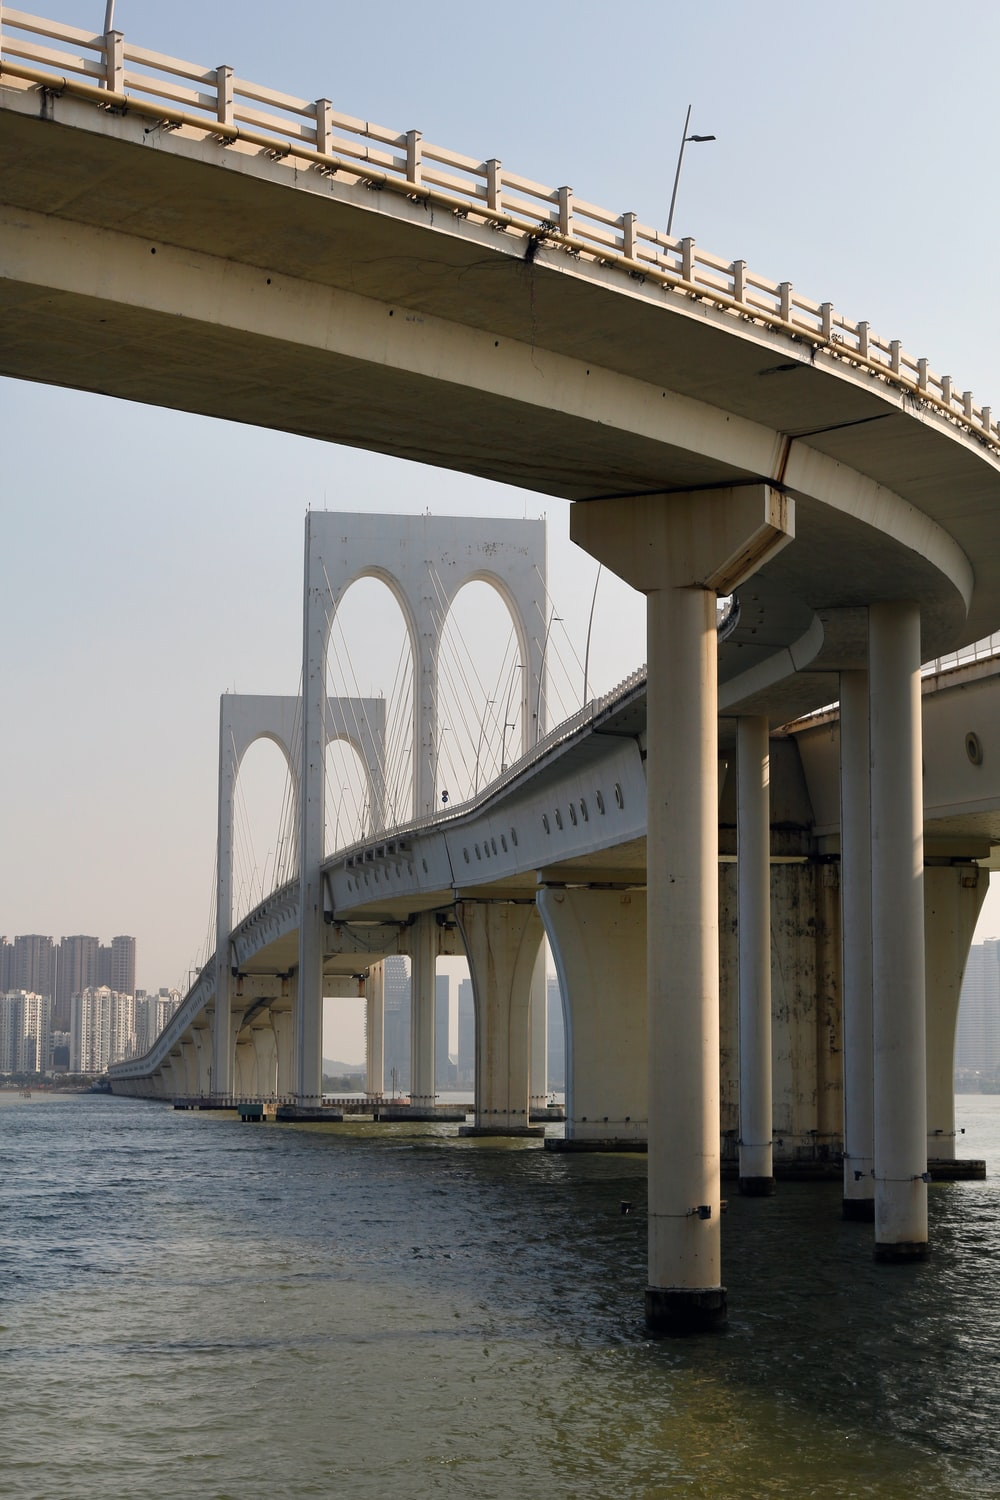 white concrete bridge over body of water during daytime